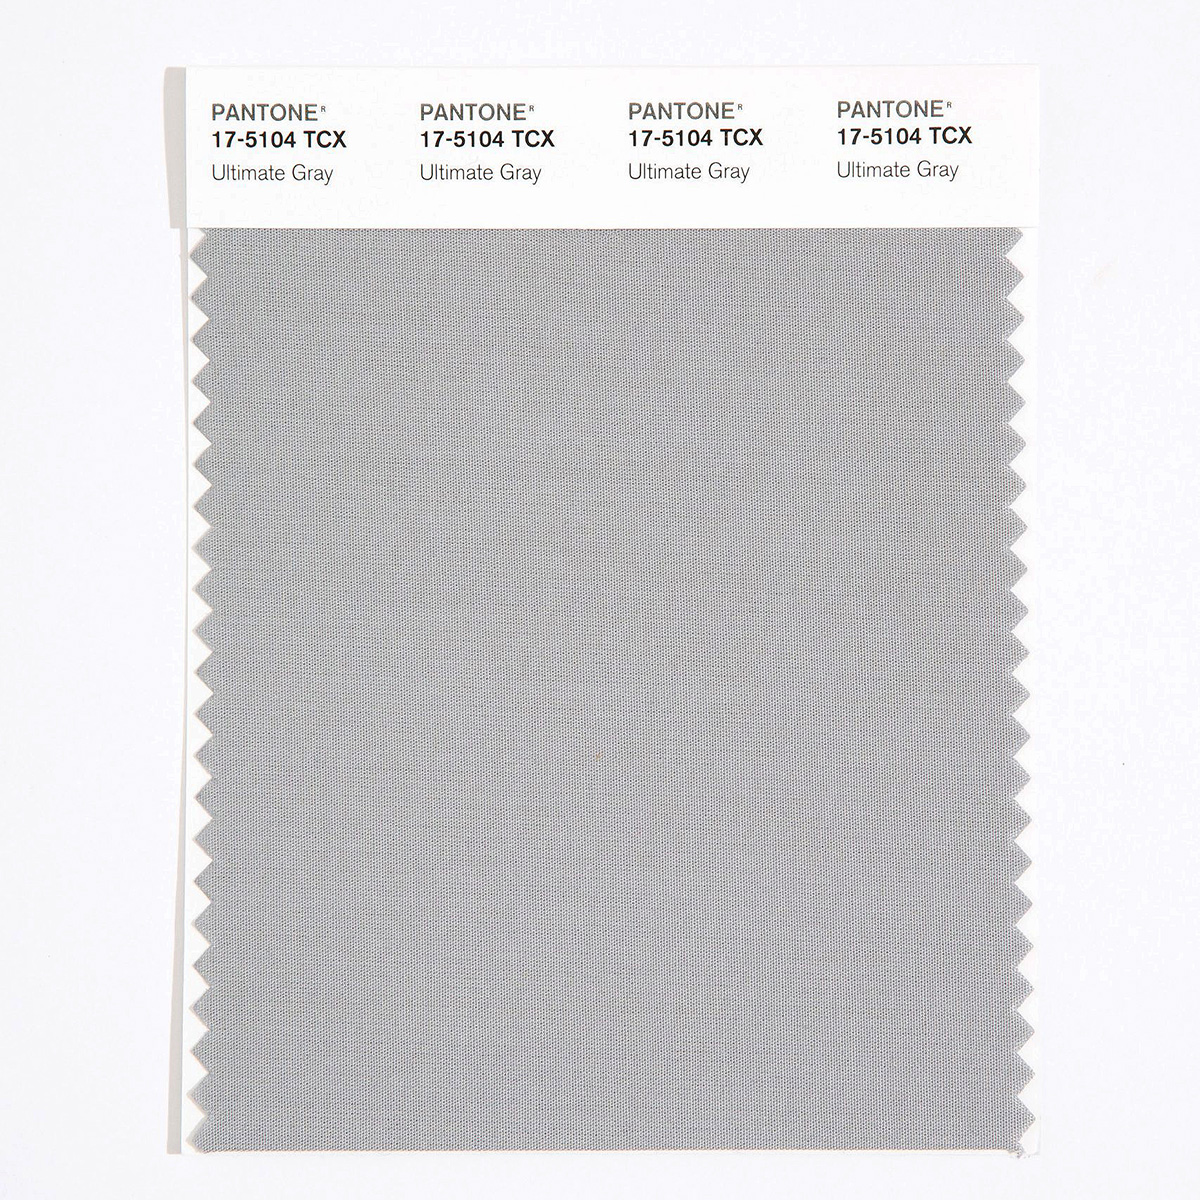 Pantone-Color-of-the-Year-2021-Ultimare-Grey-Illuminating-04